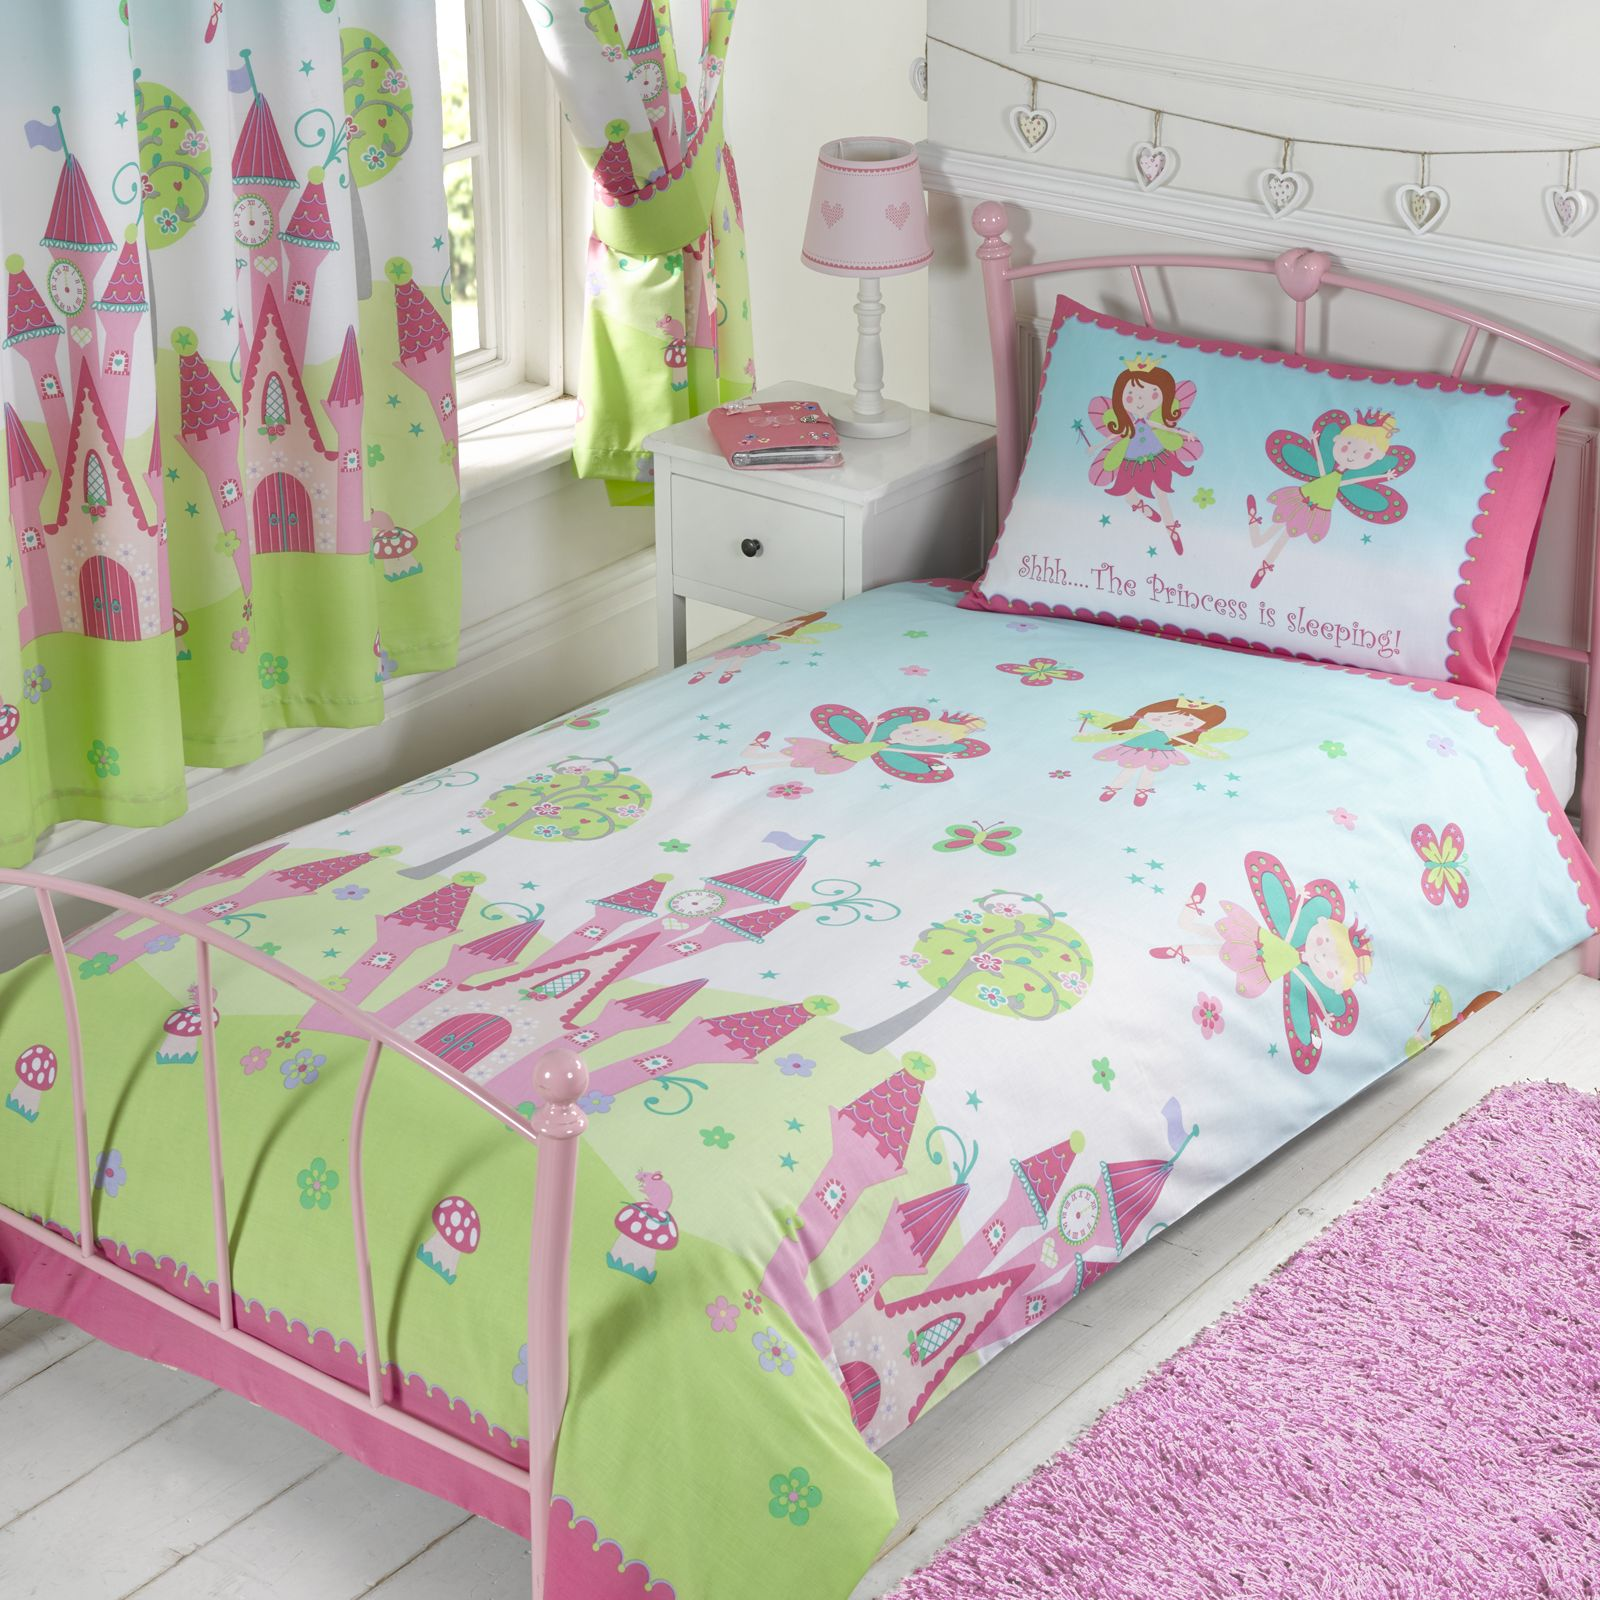 FAIRY PRINCESS 'SLEEPING' SINGLE DUVET COVER SET NEW GIRLS